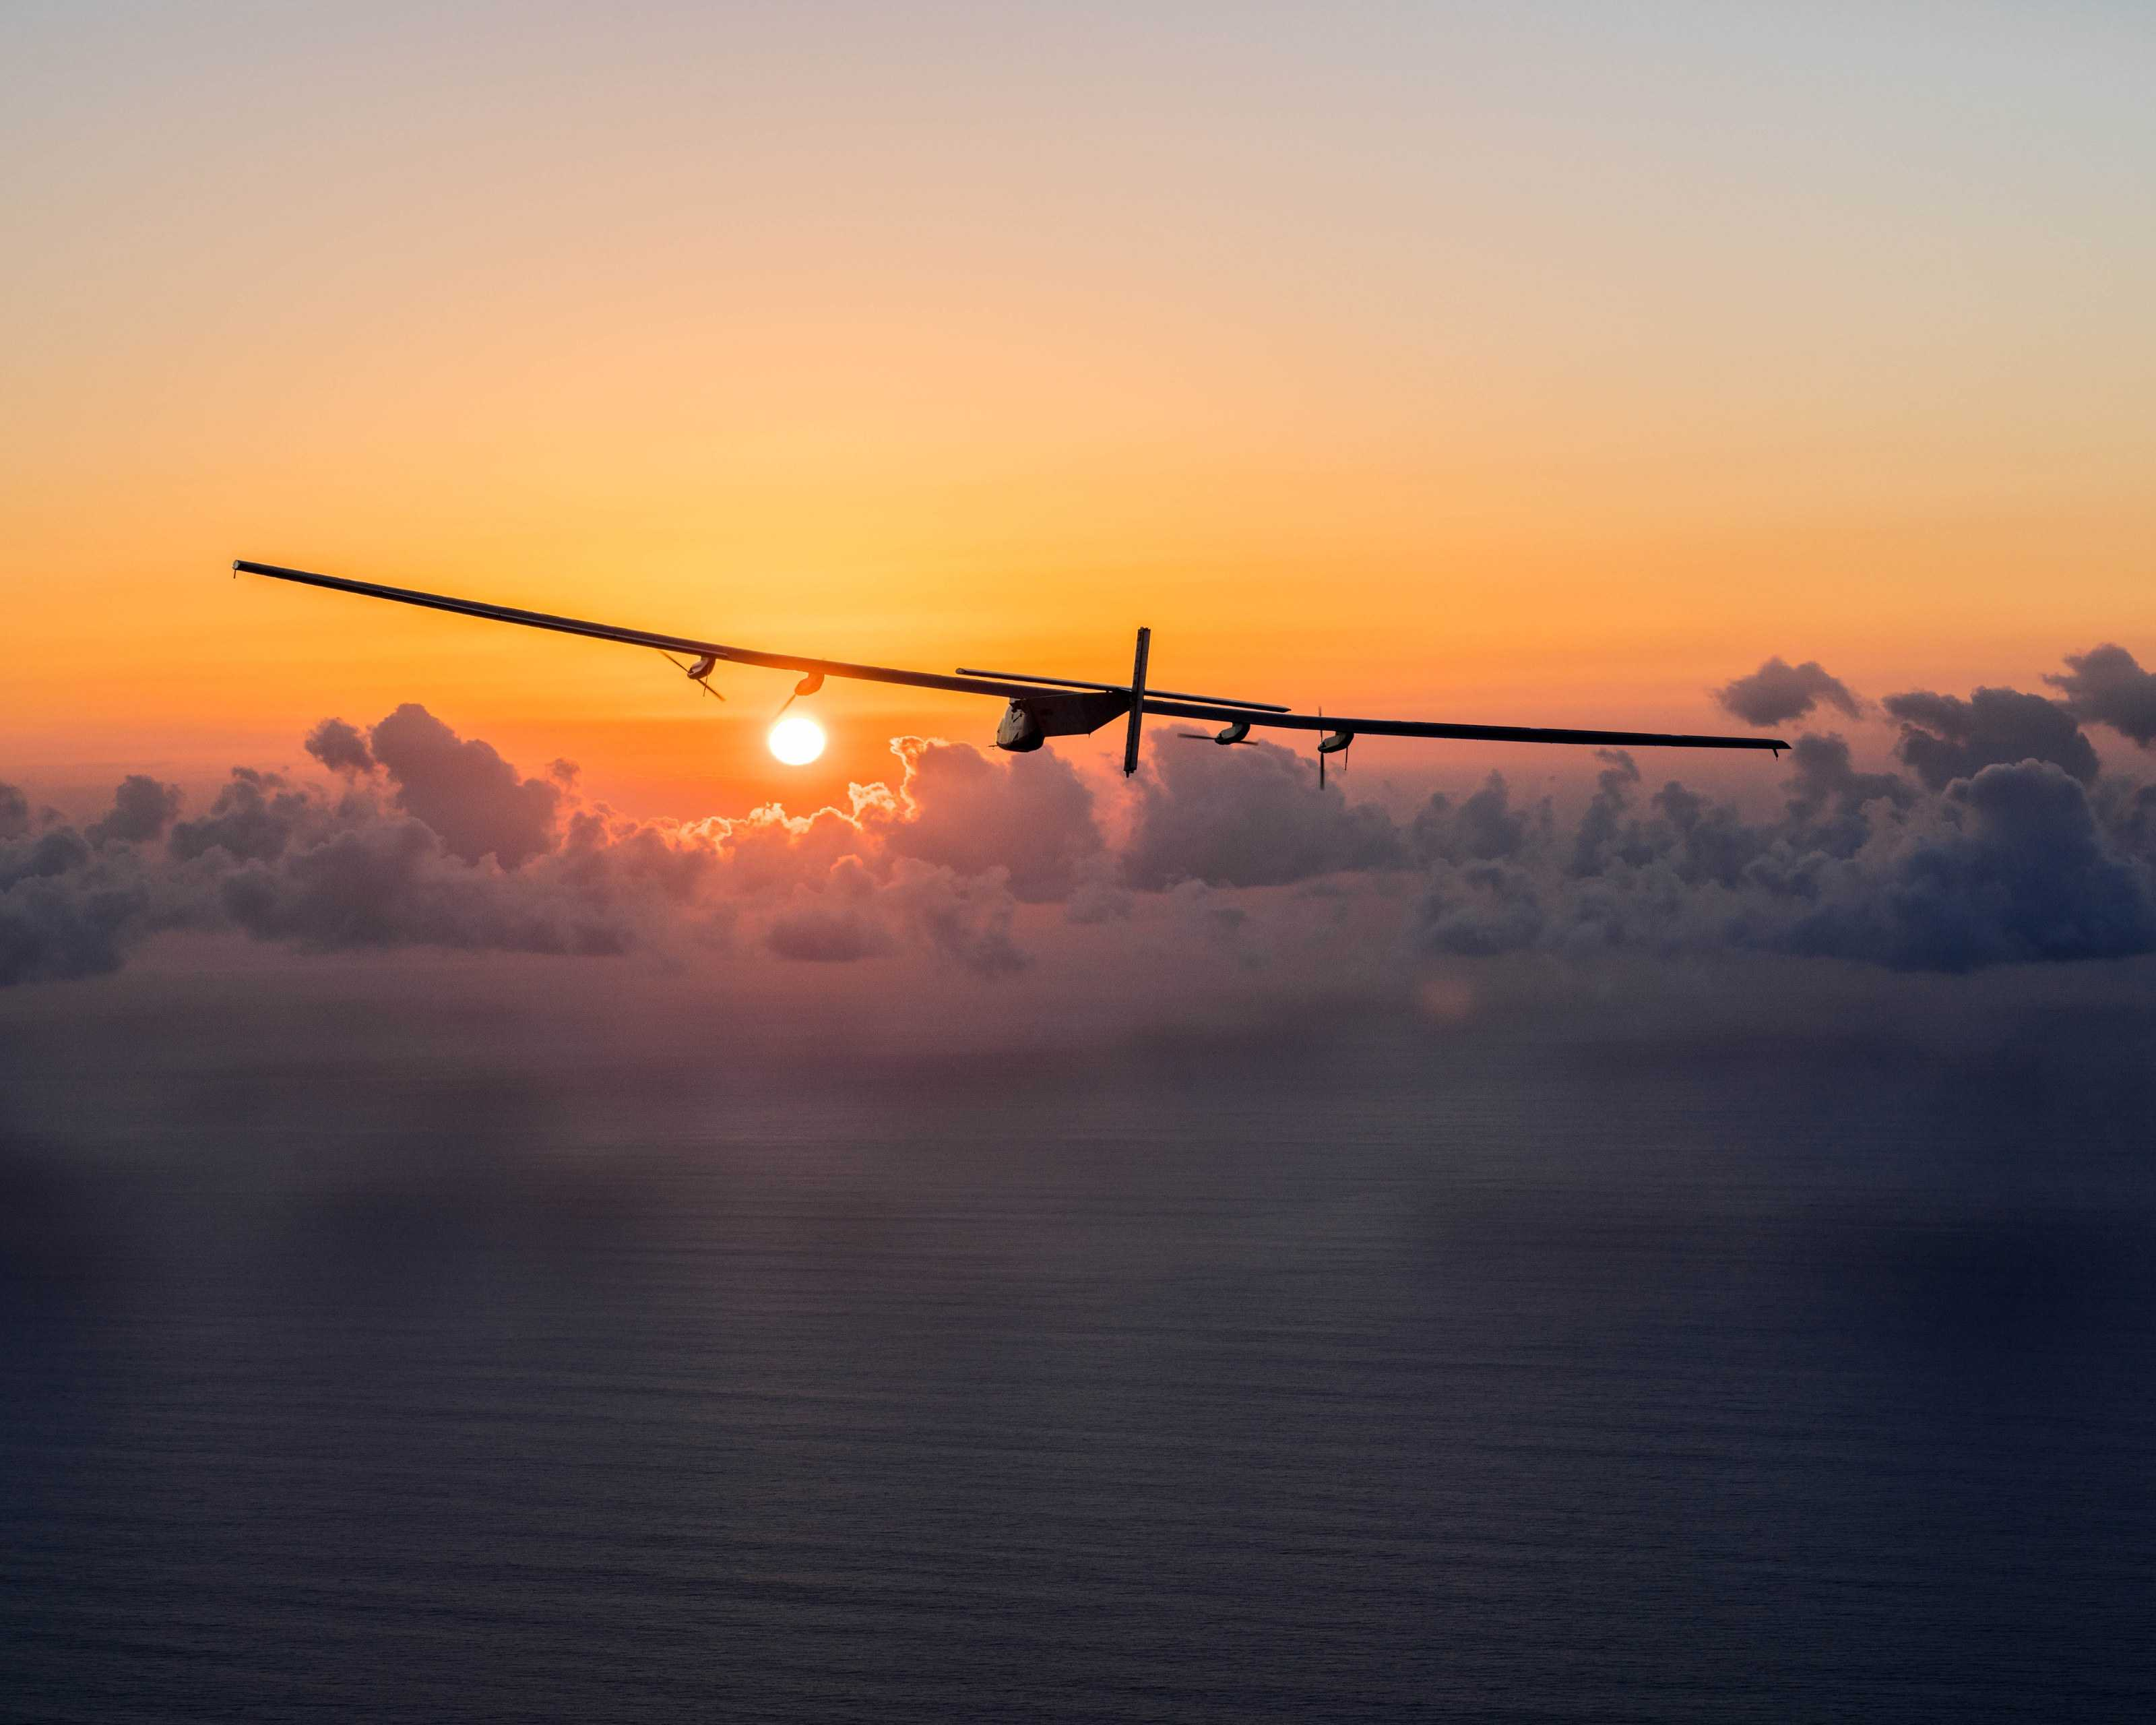 BG_SolarImpulse2_20160226_RTW_Maintenance_Flight_Hawaii_JeanRevillard-15 | © Jean Revillard